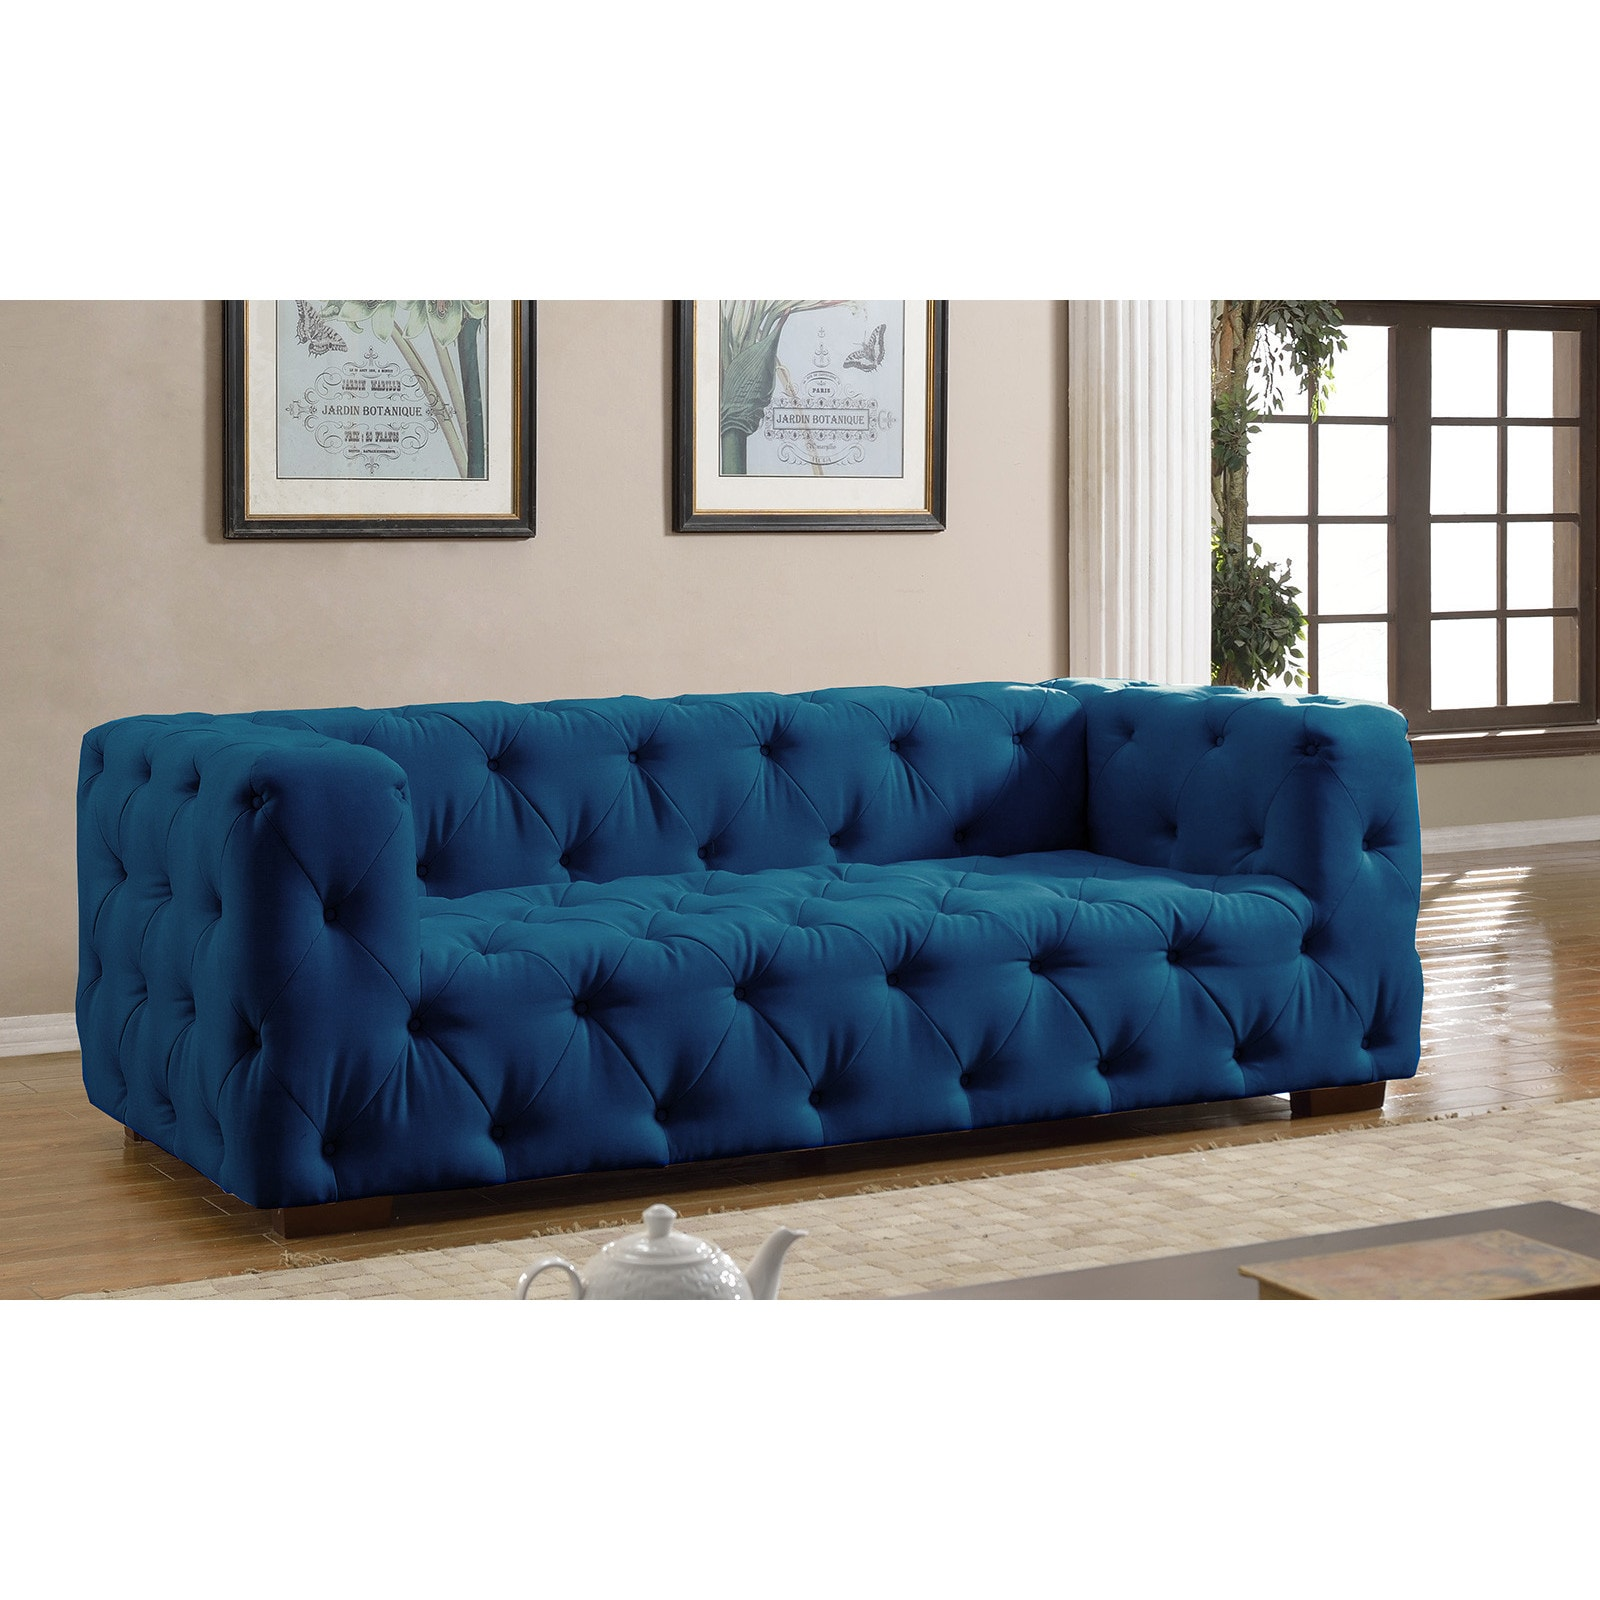 Luxurious Modern Large Tufted Linen Fabric Sofa Free Shipping Today 12179210